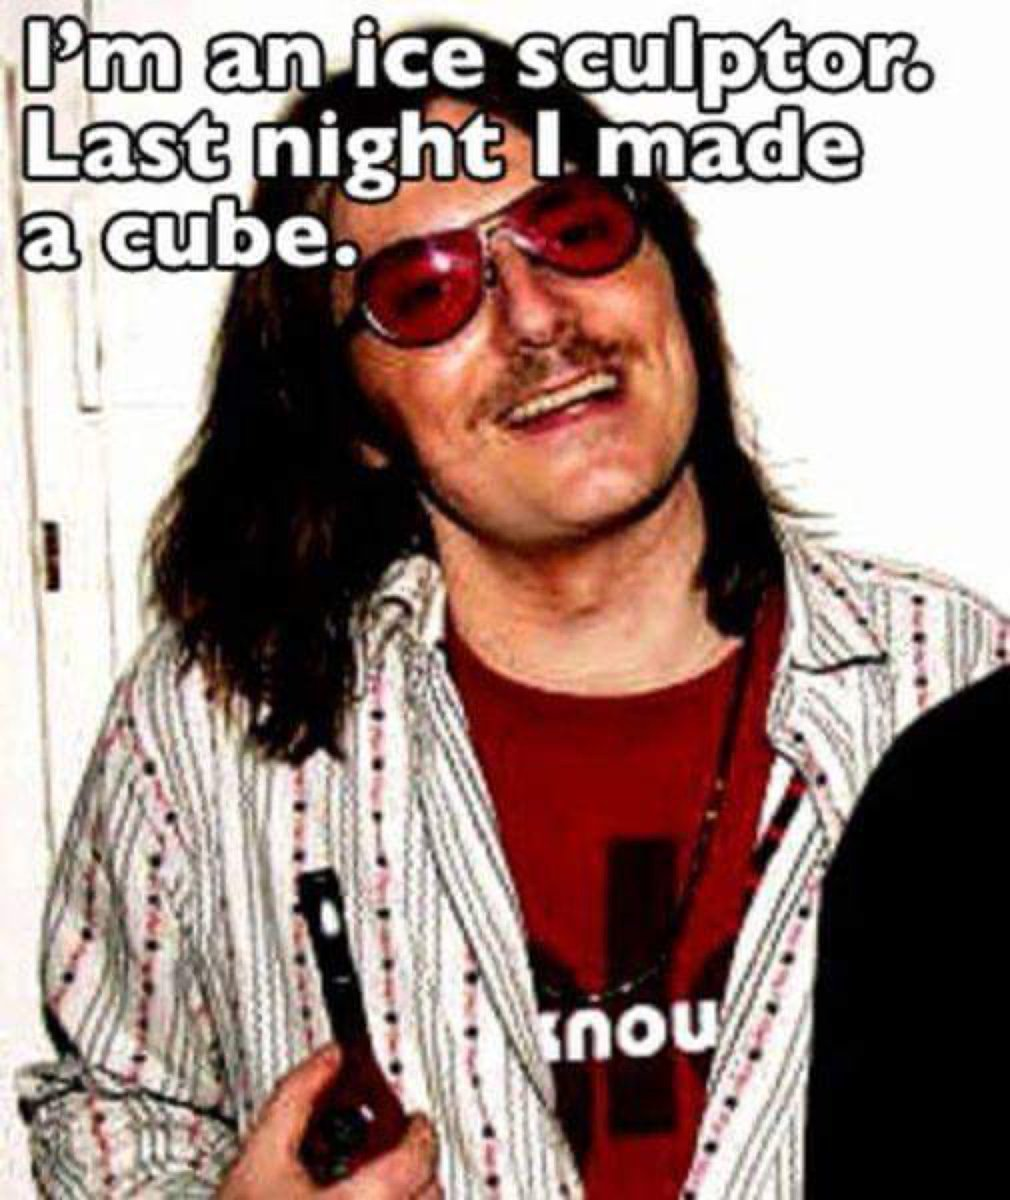 It's the little things…  #MitchHedberg #humor pic.twitter.com/aiIXL2z84C